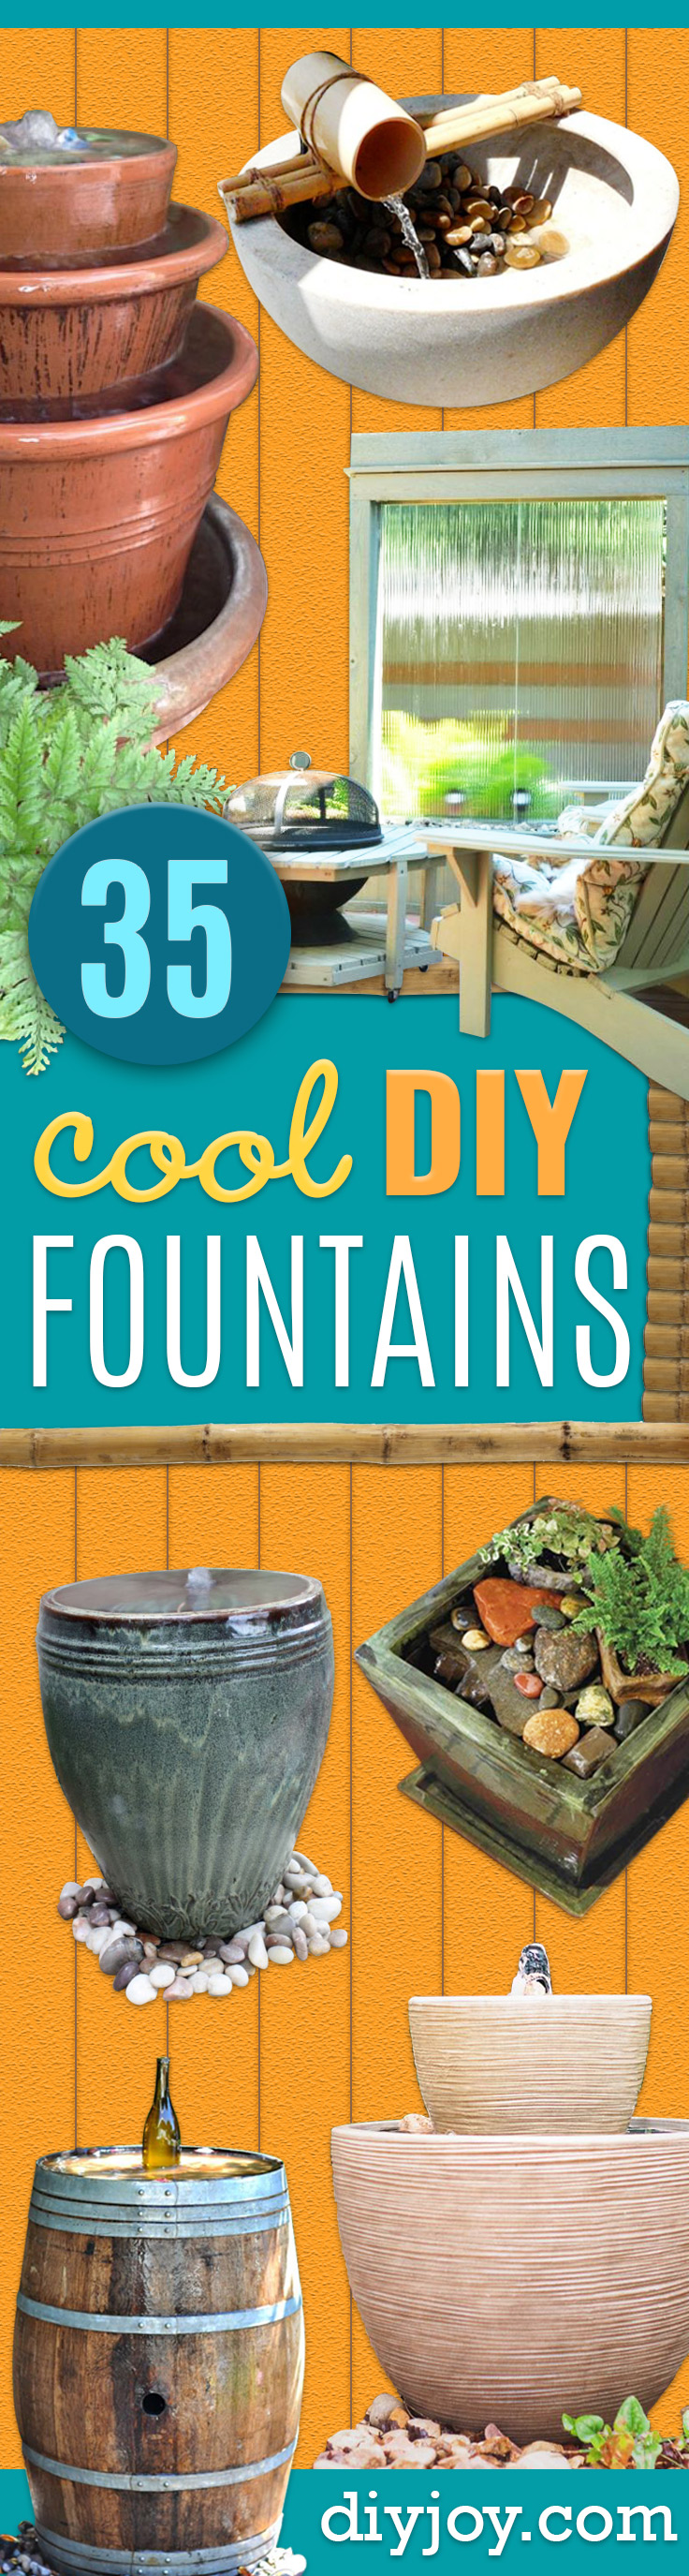 DIY Fountains - Easy Ways to Make A Fountain in the Backyard - Do It Yourself Projects for the Garden - DIY Home Improvement on a Budget - Step by Step DIY Tutorials With Instructions http://diyjoy.com/diy-fountains